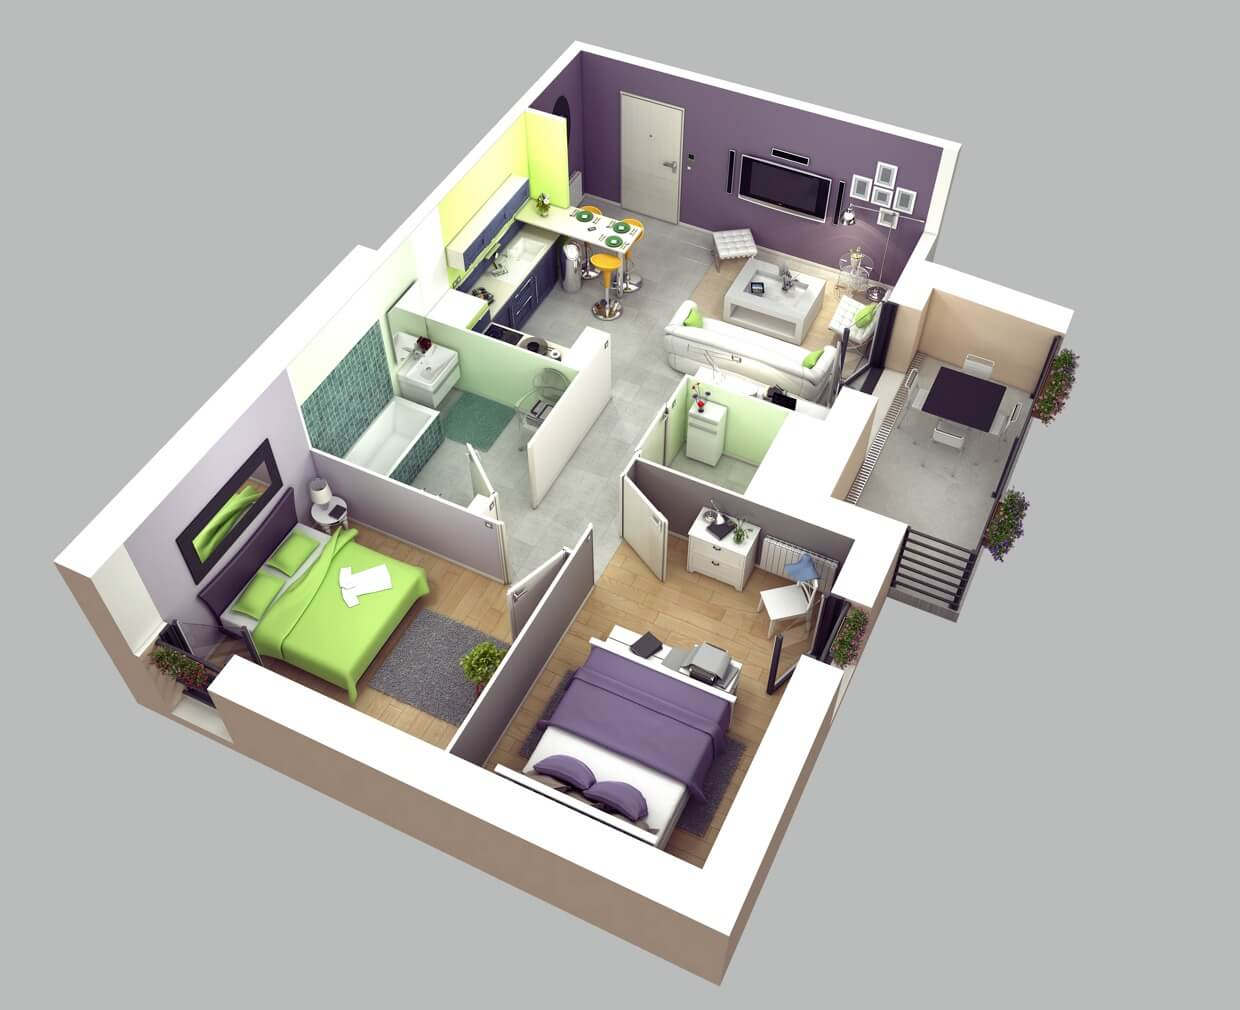 3D apartment plan with green and violet interior design